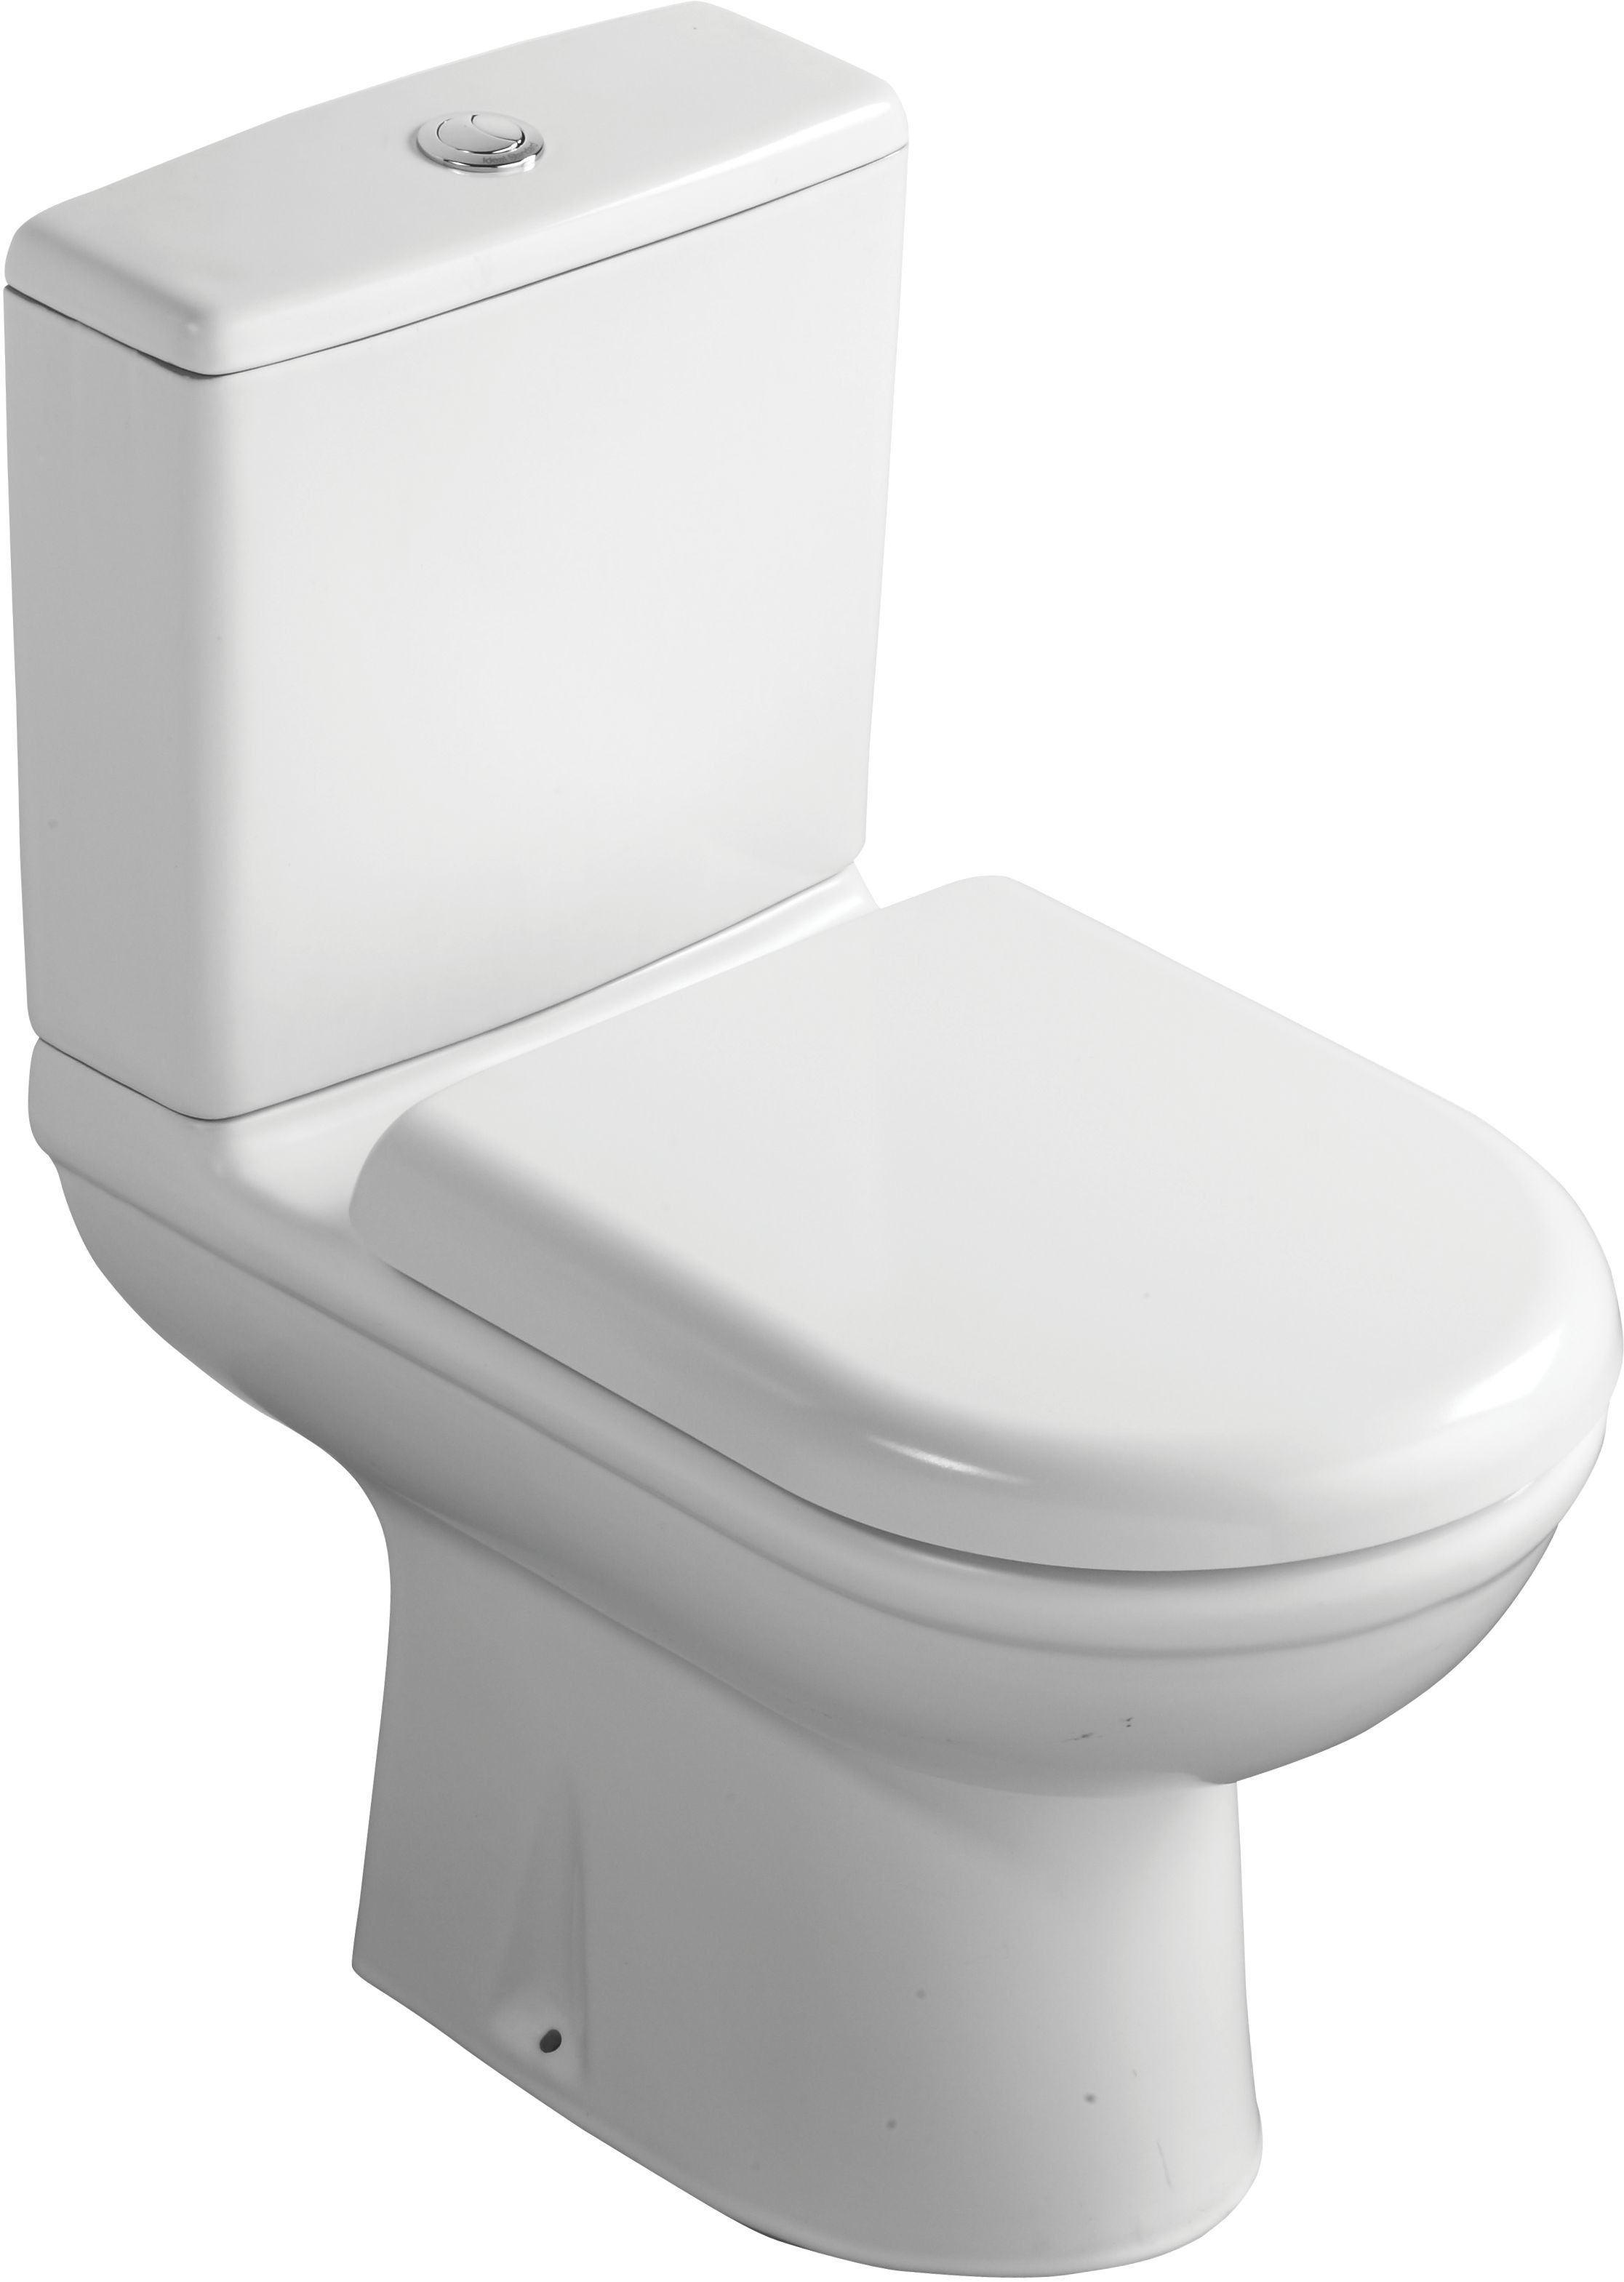 Ideal Standard Della Close Coupled Toilet With Soft Close Seat